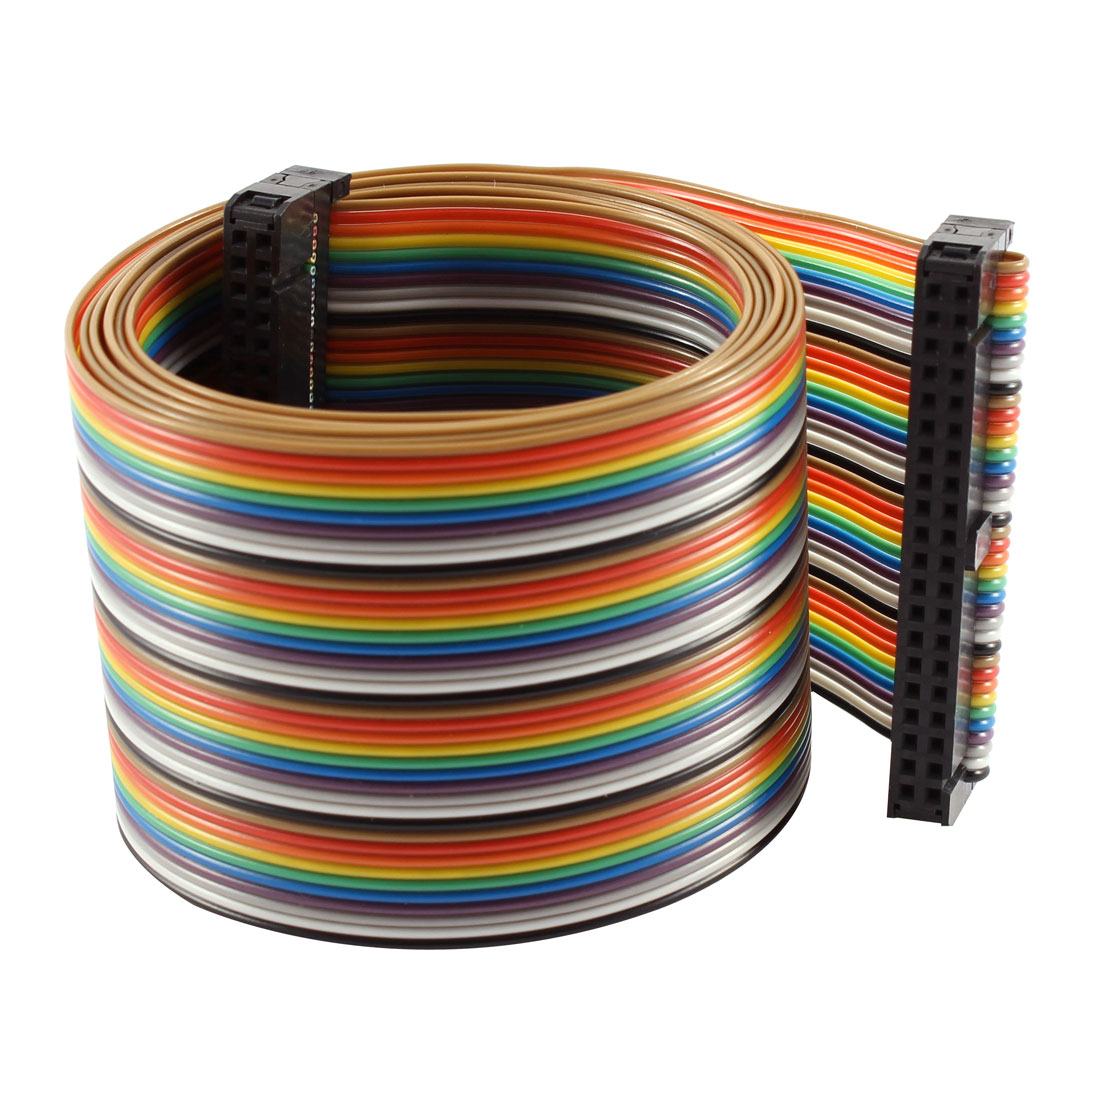 2.54mm Pitch 40 Pin 40 Way F/F Connector IDC Flat Rainbow Ribbon Cable 118cm